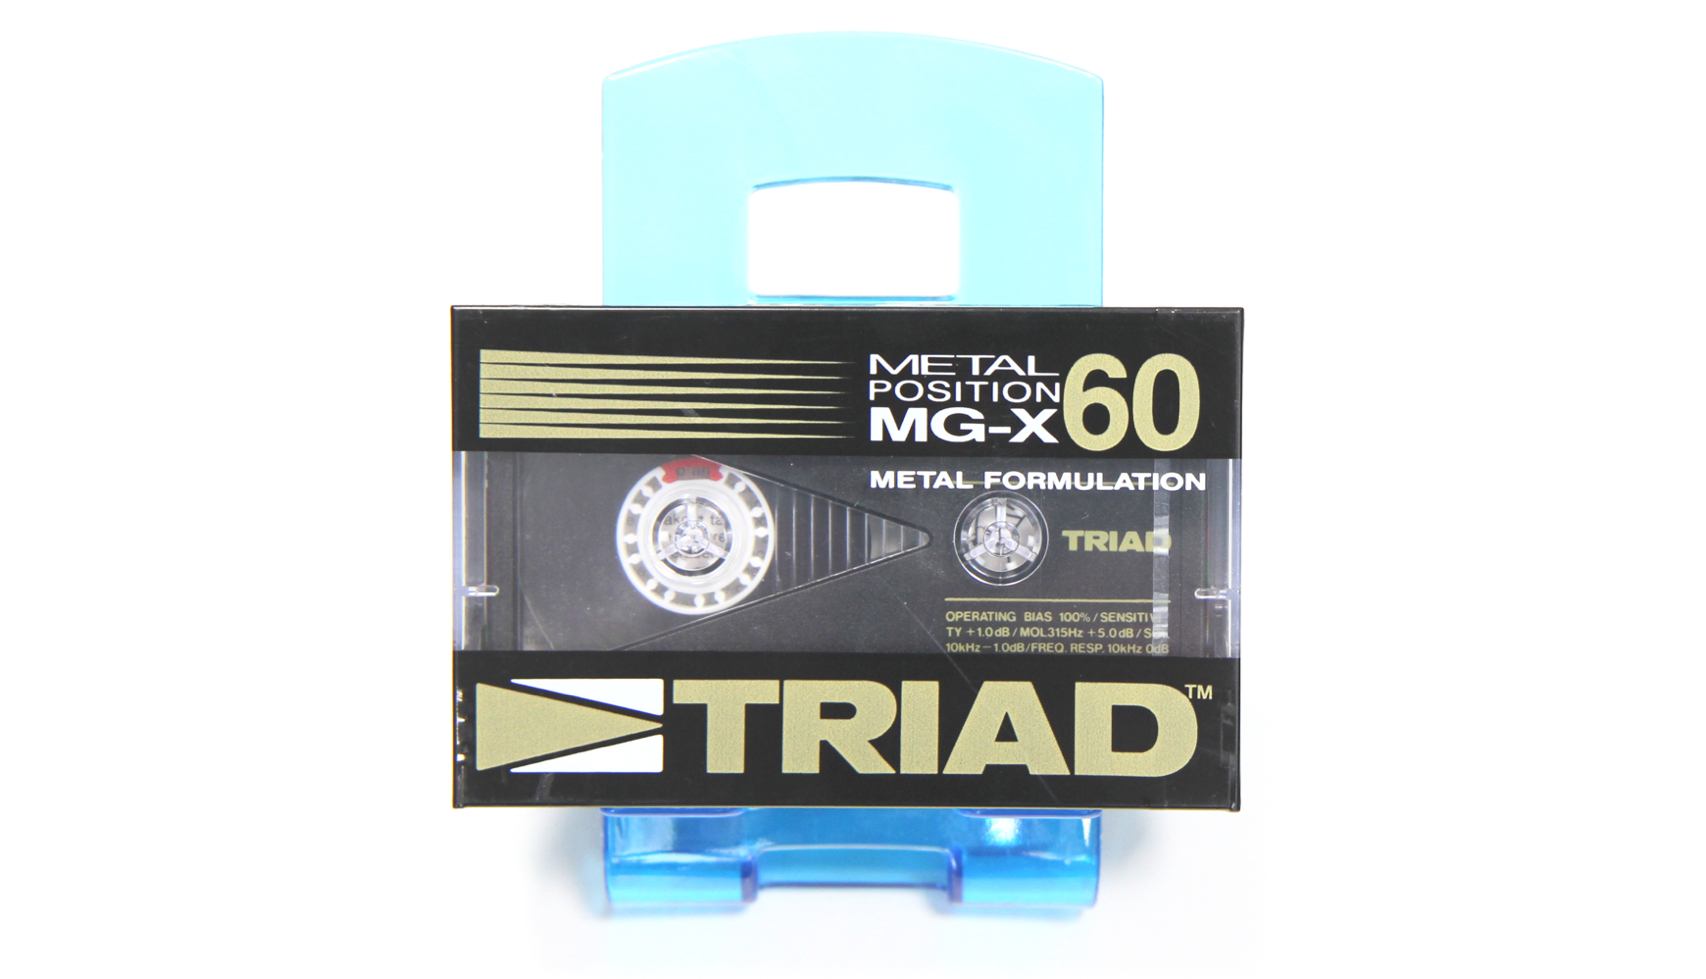 TRIAD MG-X60 Position Metal